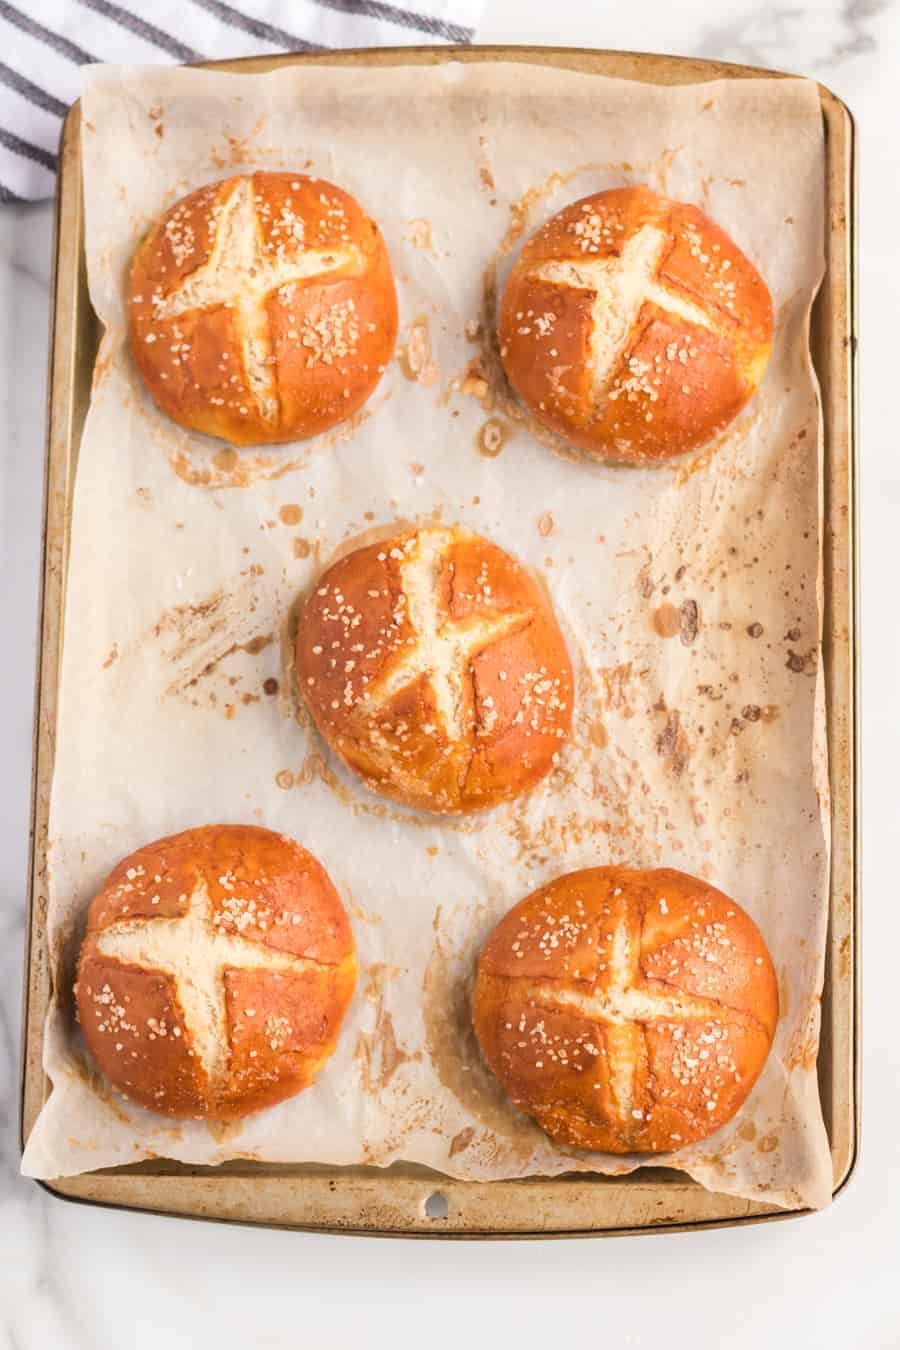 Homemade Pretzel Rolls made with a simple yeast dough that is kneaded until soft, boiled, and then baked into soft and extra chewy pretzel rolls.